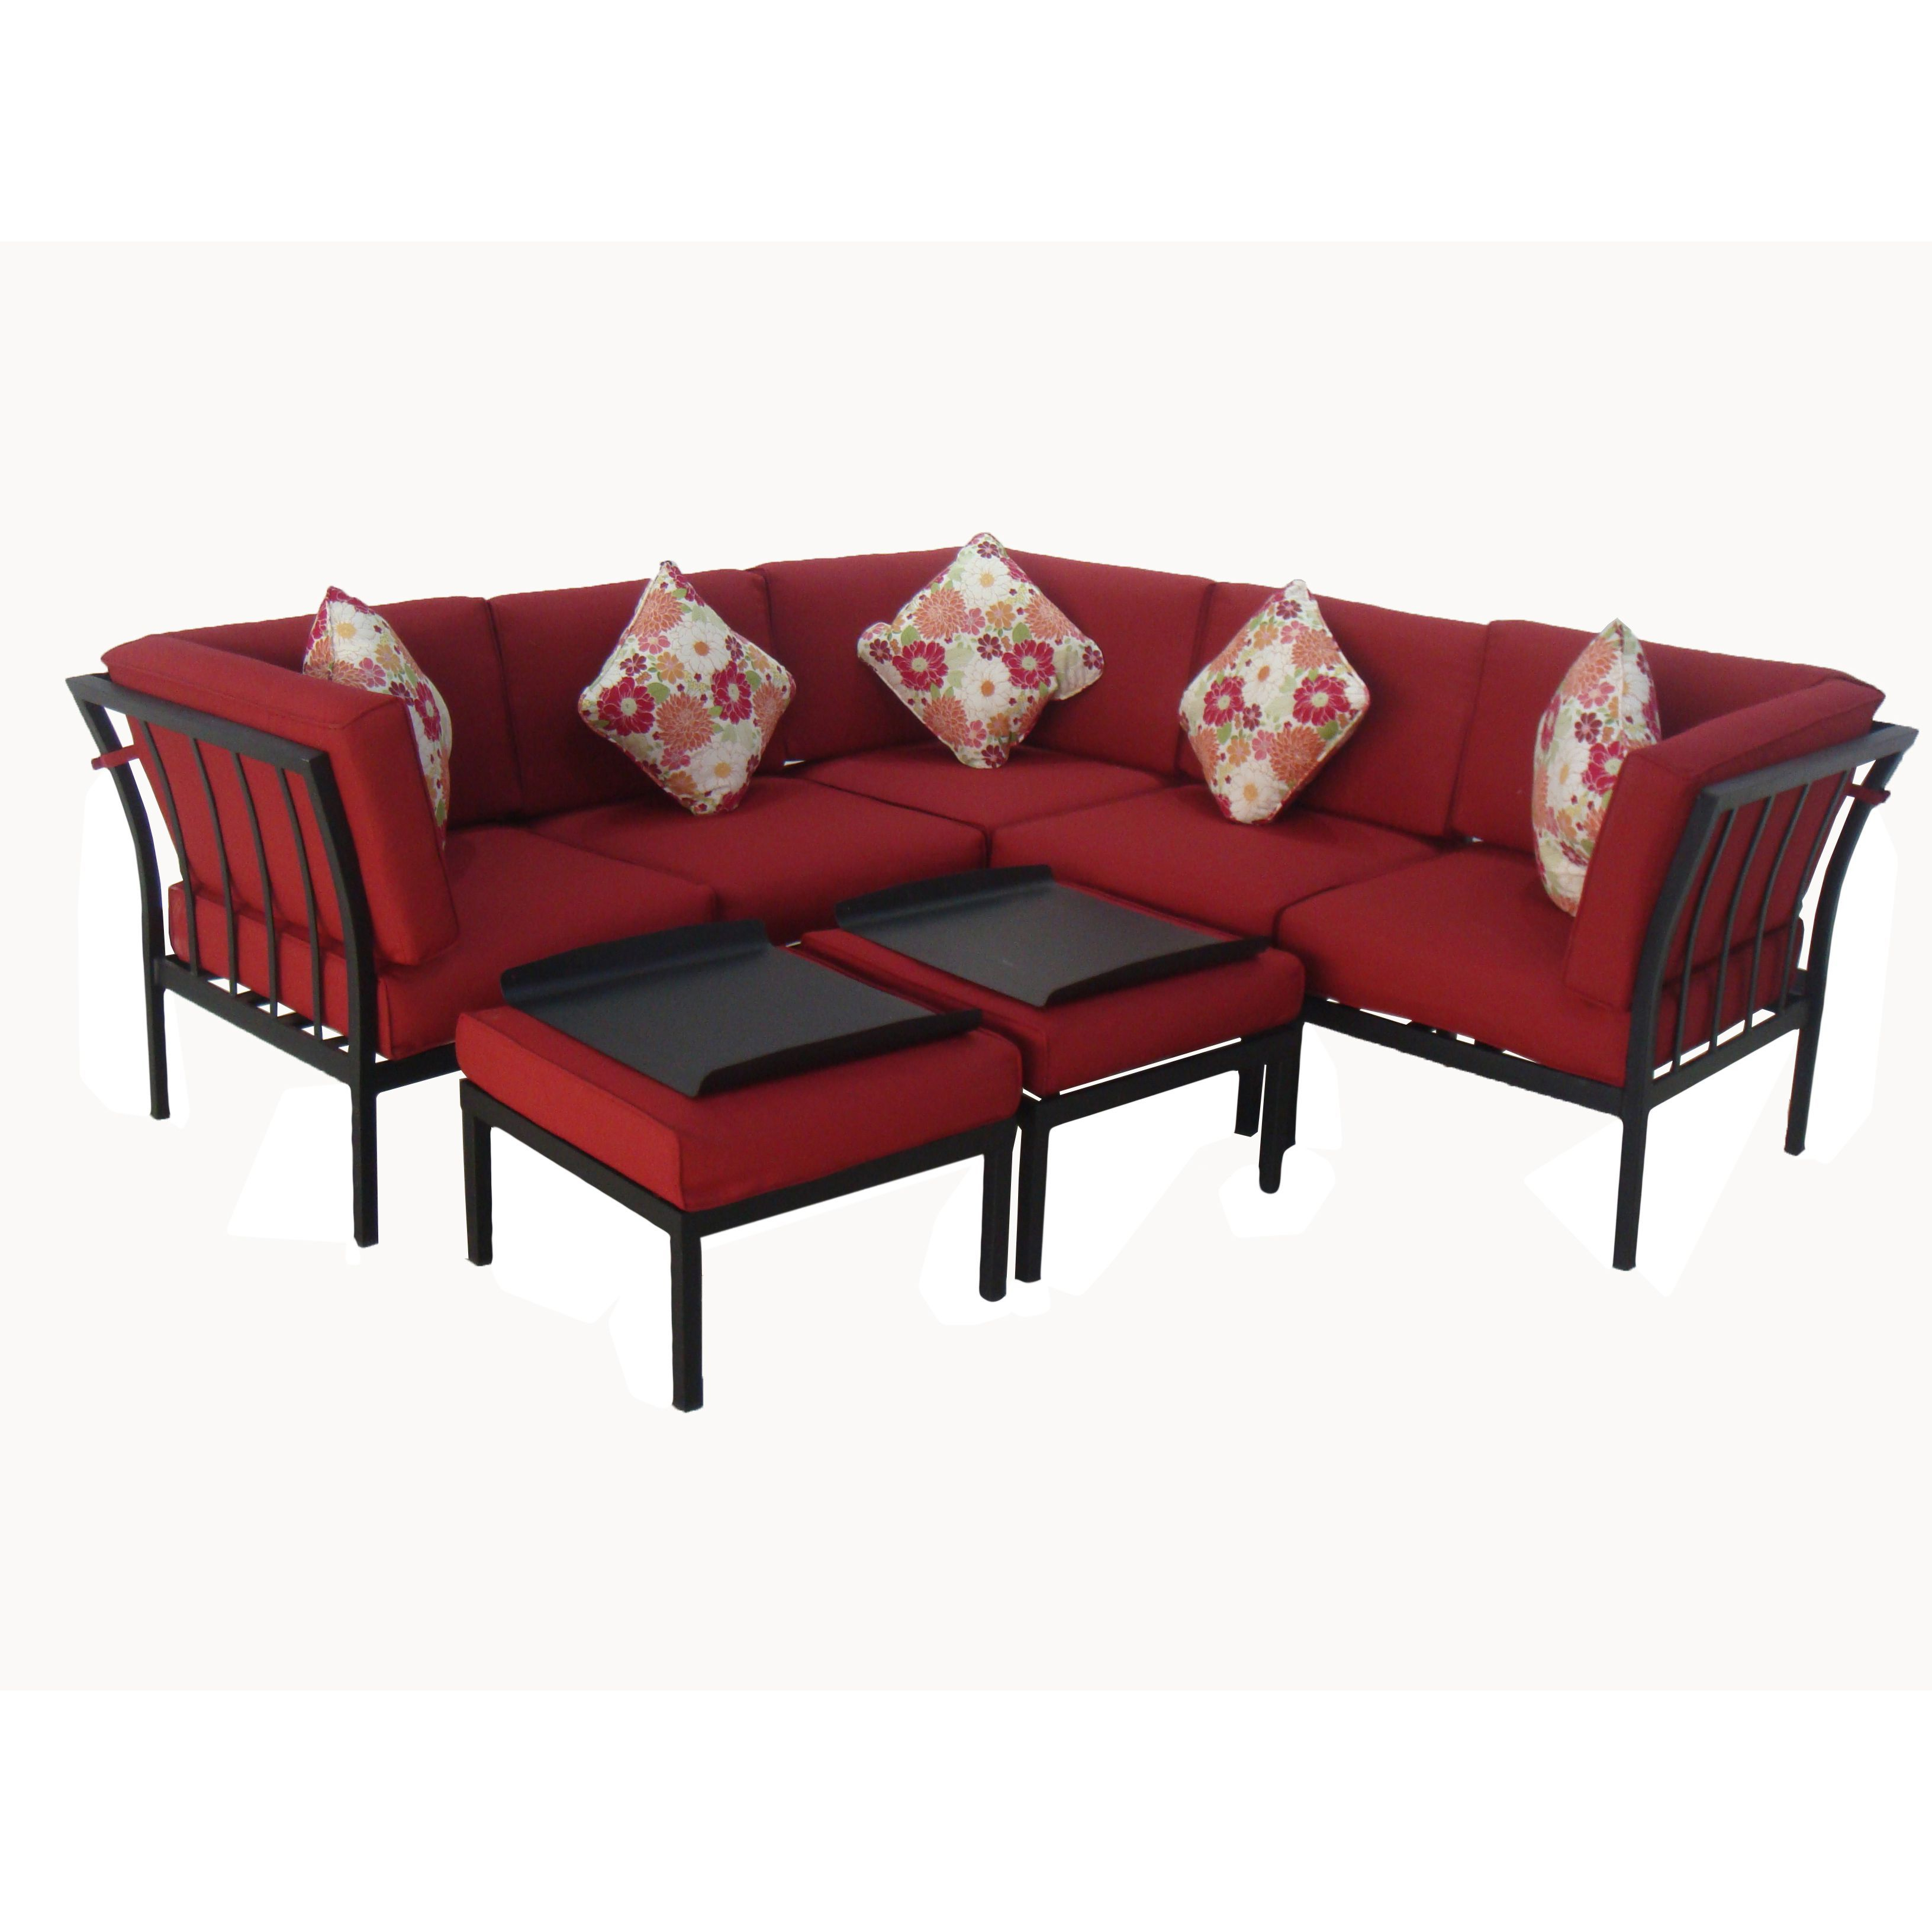 Practical And Multifunctional, This Modular Set Is Perfect With Regard To Preferred Greta Living Patio Sectionals With Cushions (View 15 of 20)